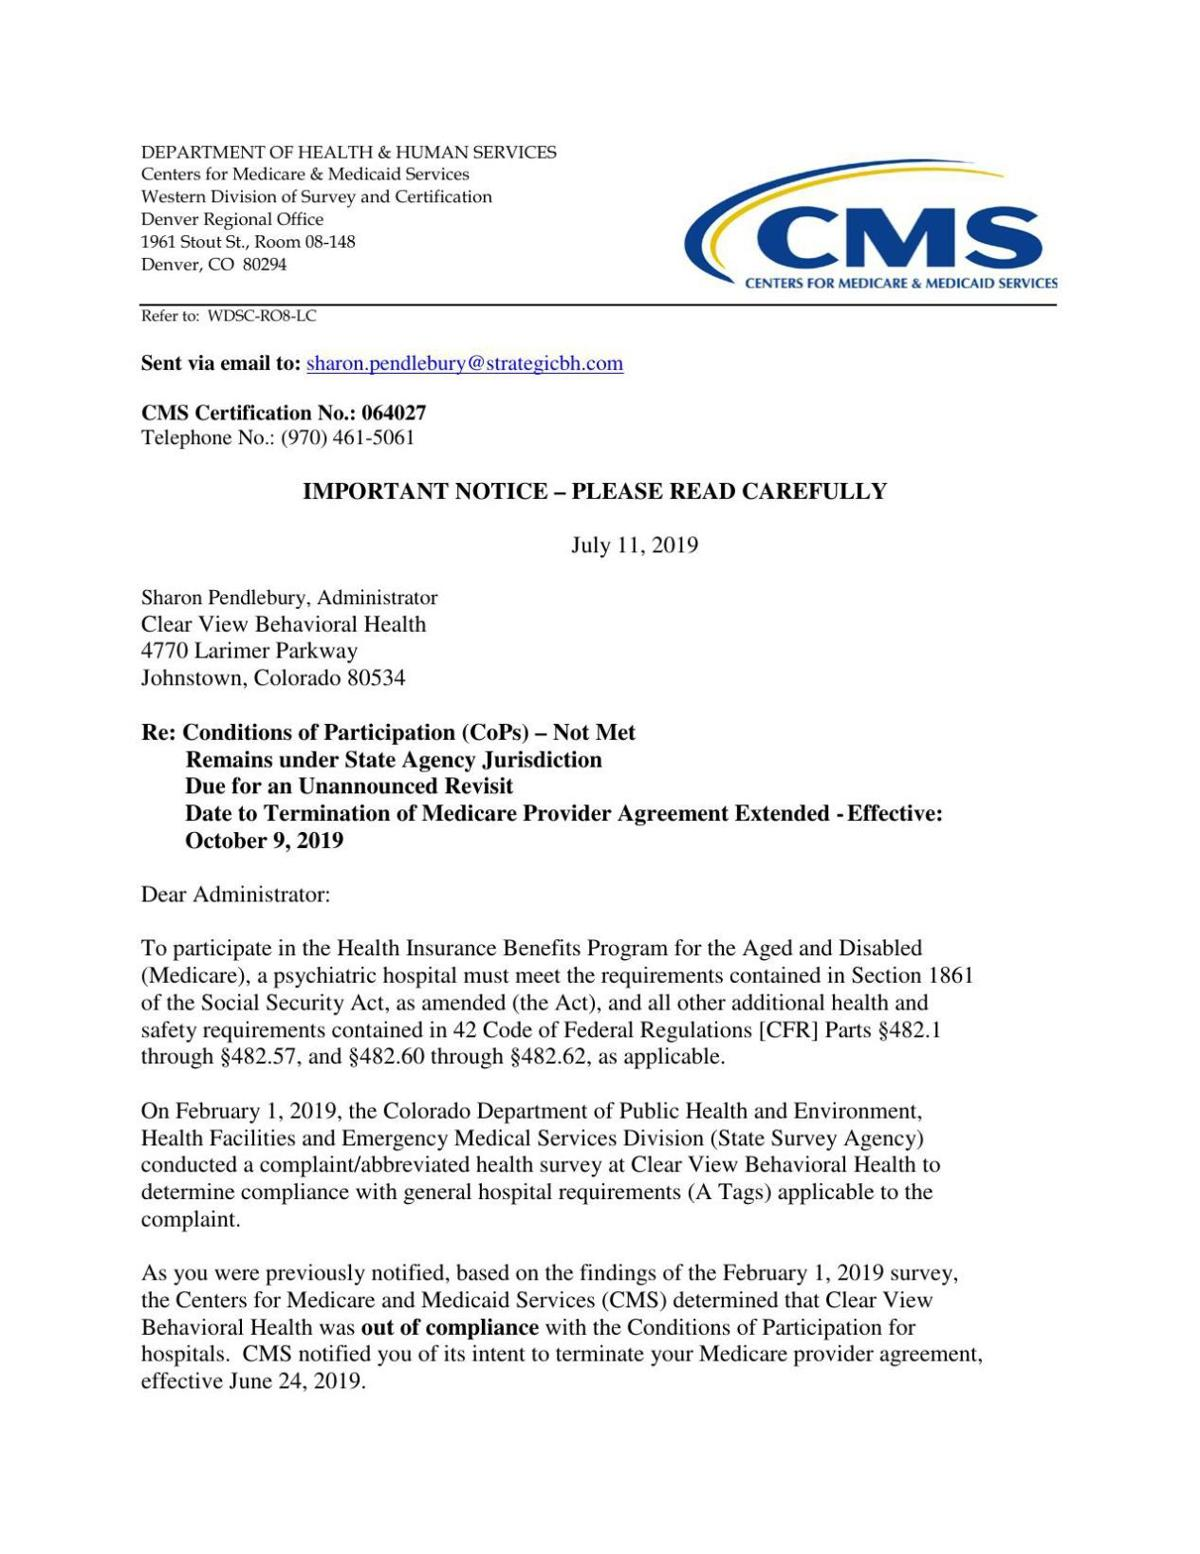 July 11 CMS letter to Clear View